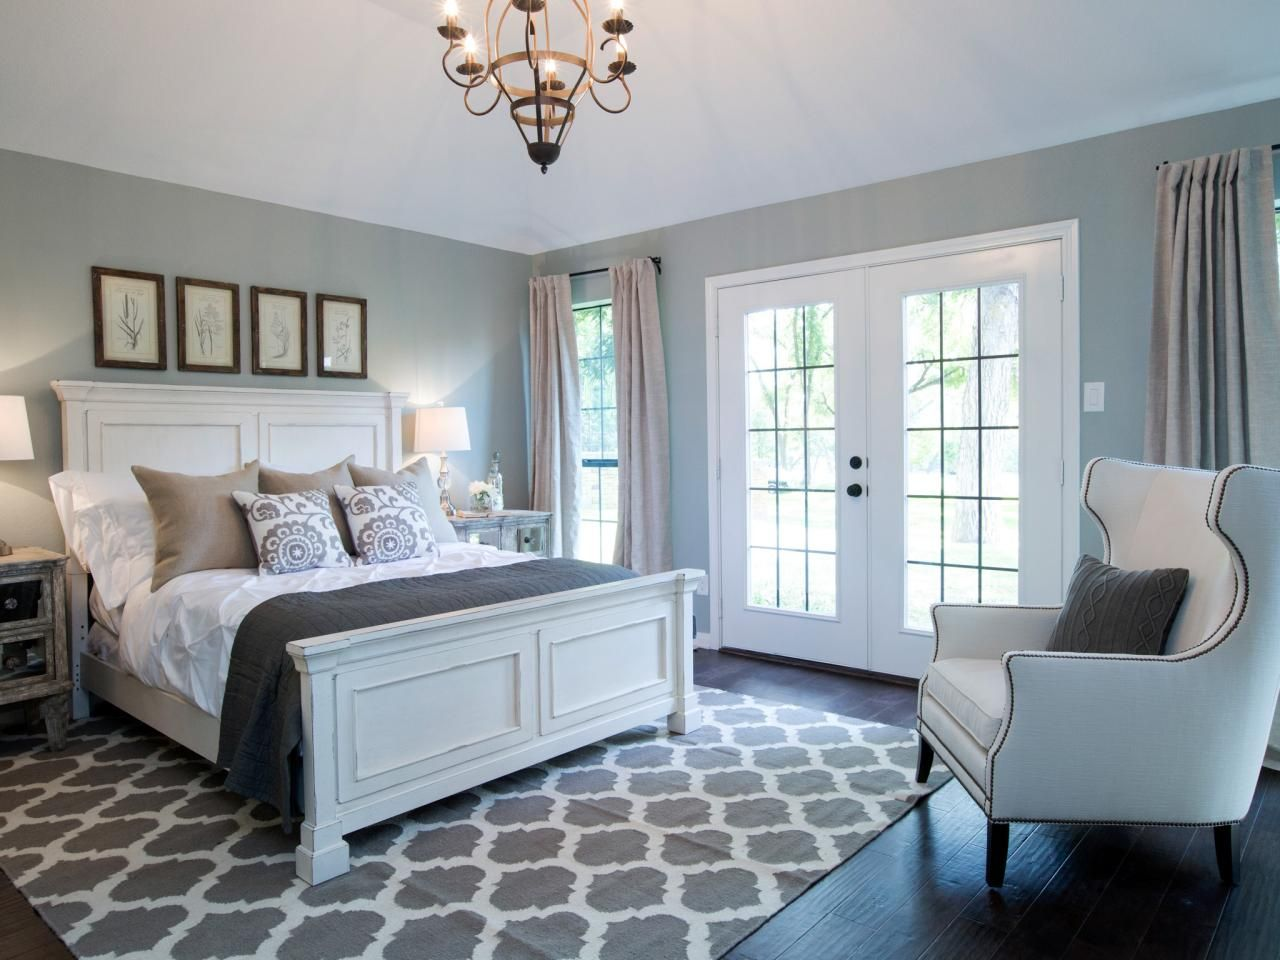 Master bedroom designs ideas - Fixer Upper Yours Mine Ours And A Home On The River Pretty And Relaxing Master Bedroom